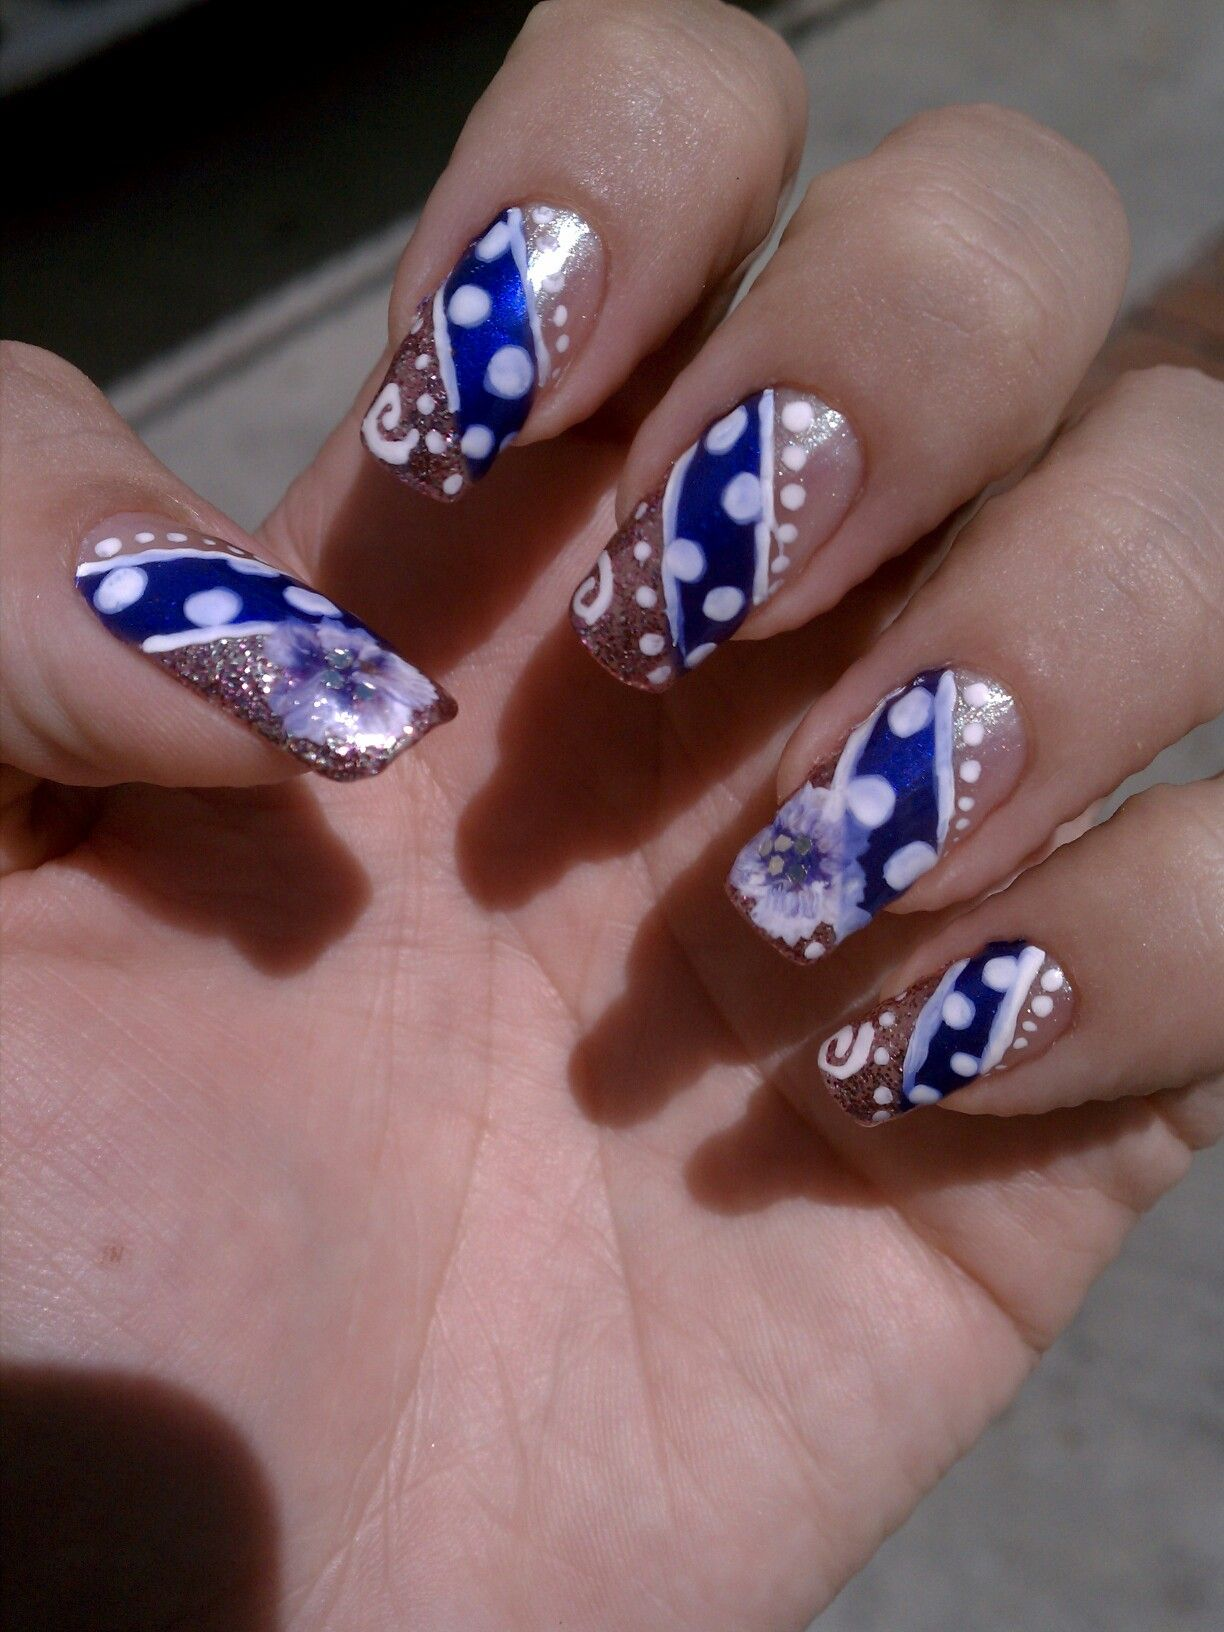 Inspired by Raquel (Love4nails)   Nails   Pinterest